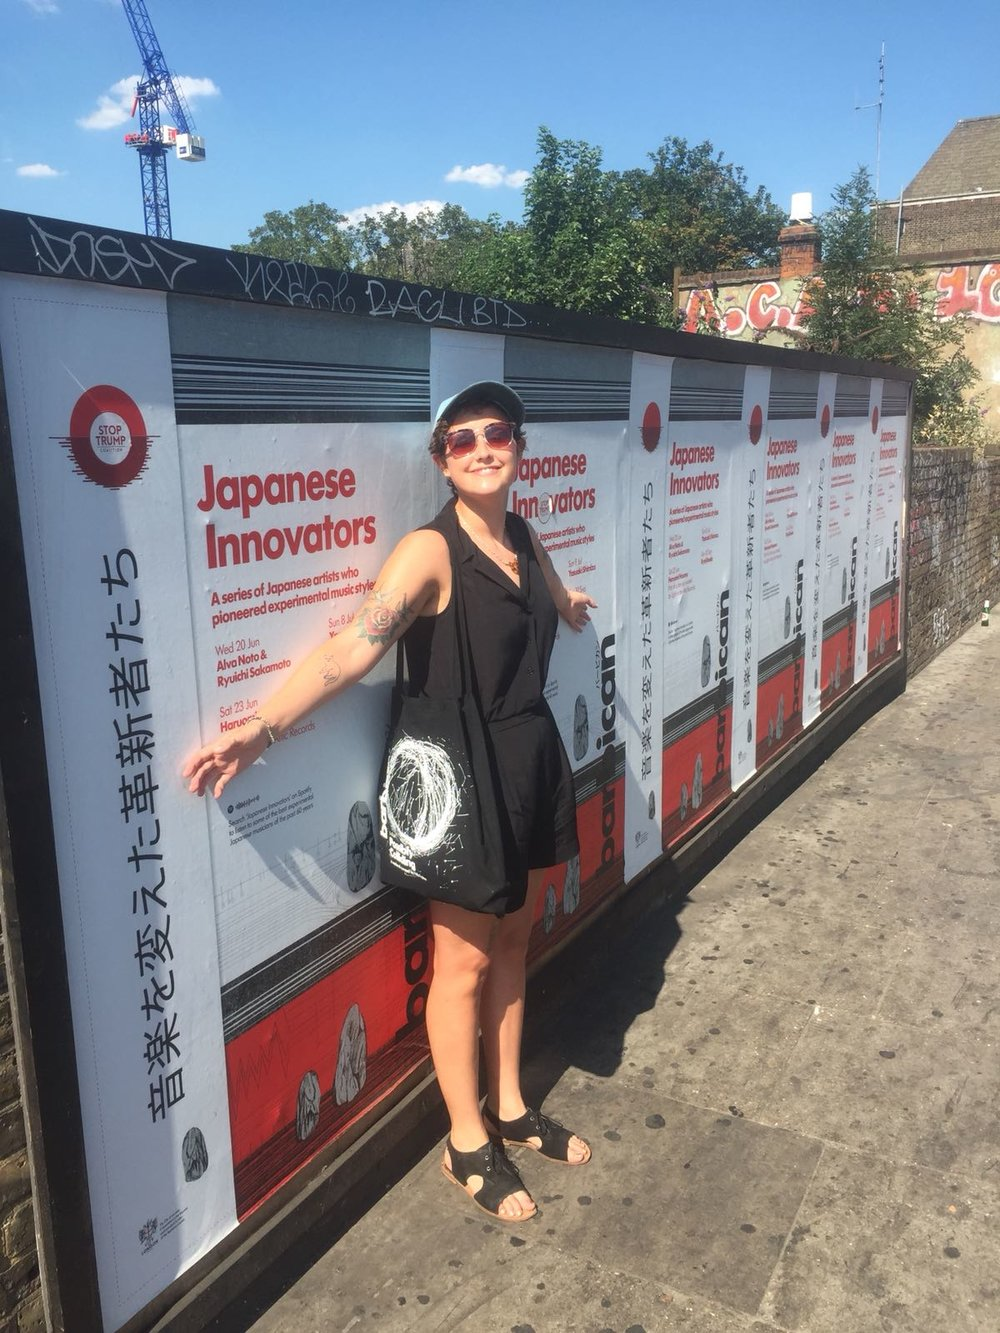 Pictured Amy Wilkes - Display at New Cross Gate - Artwork by Aleesha Nandhra